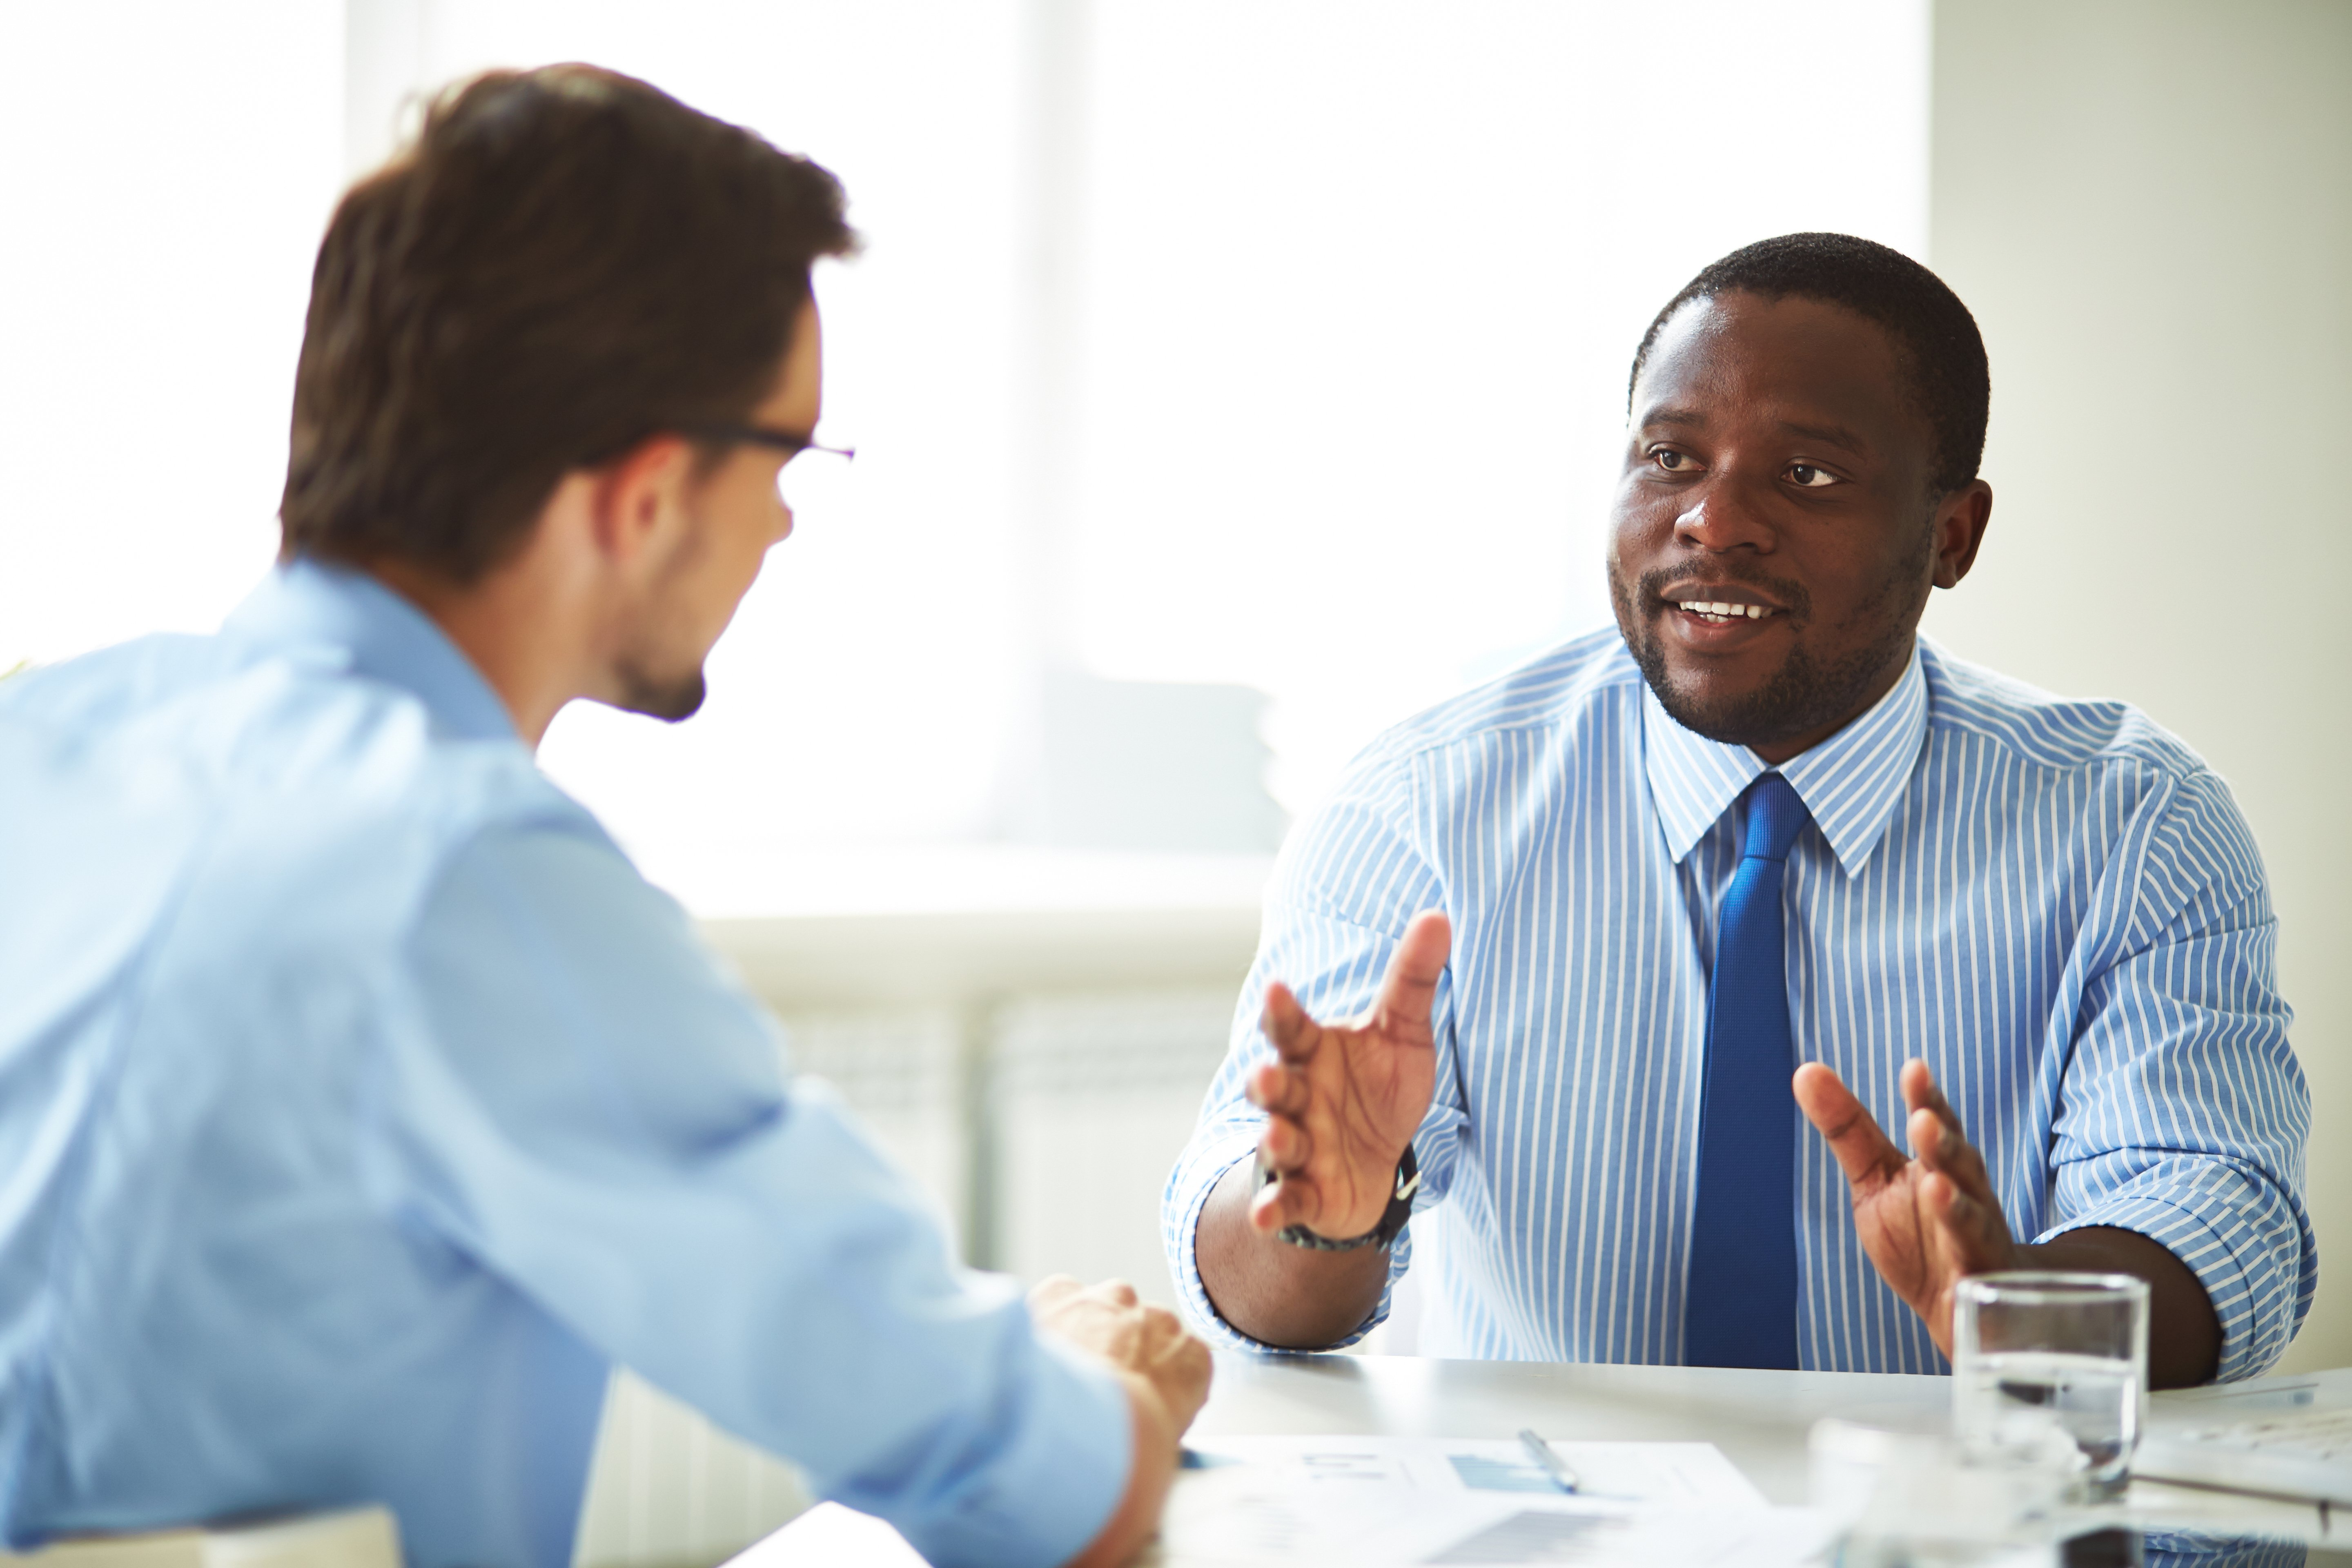 5 ways to improve the way you communicate with your colleagues